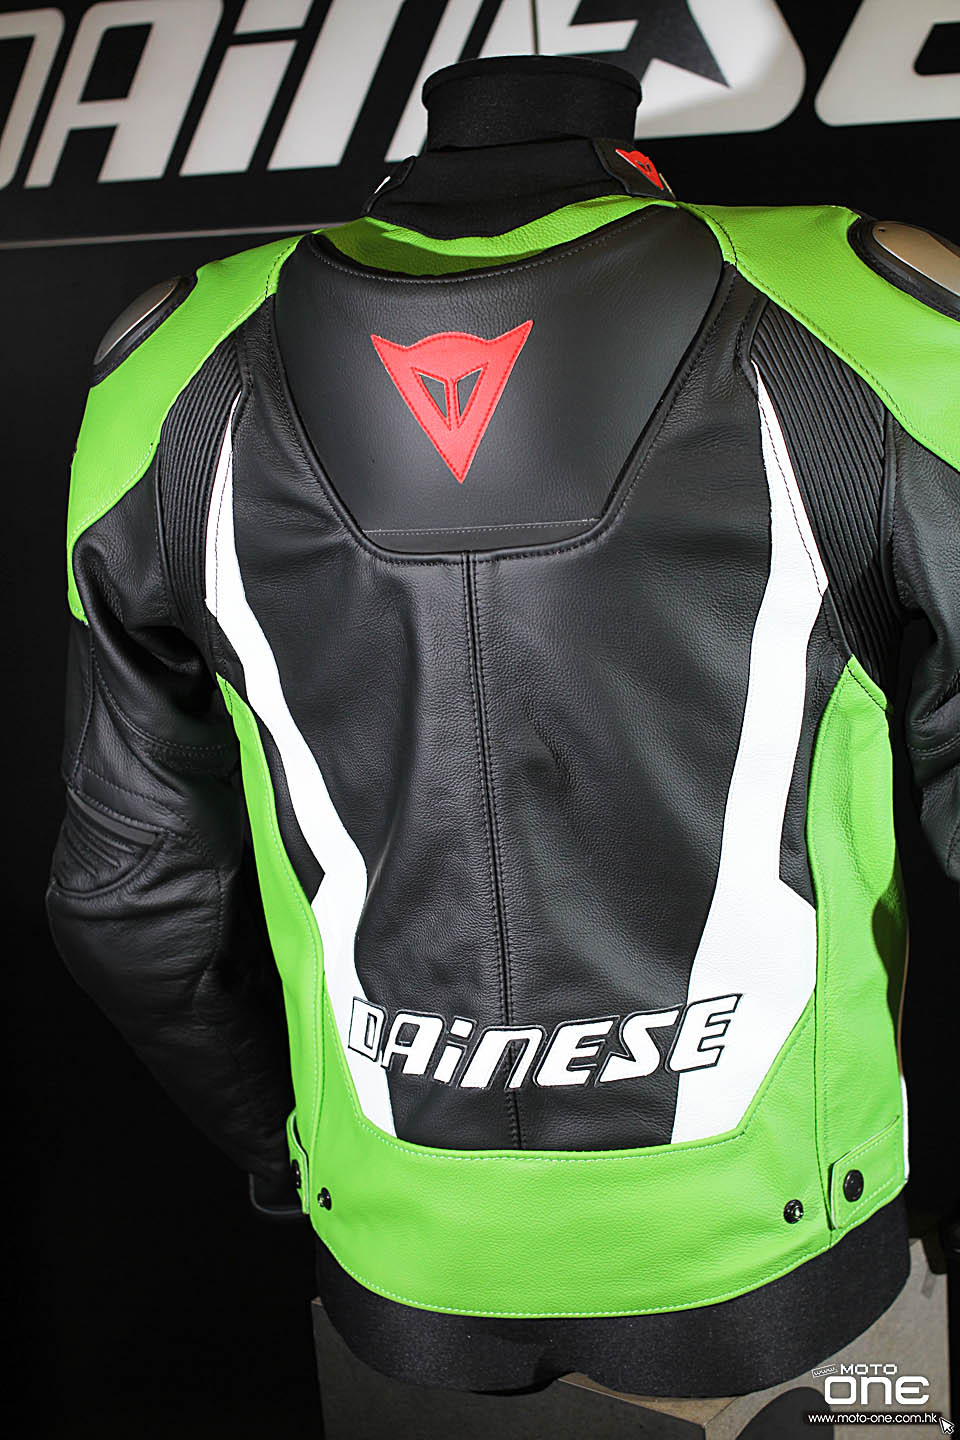 2016 DAINESE PRODUCTS